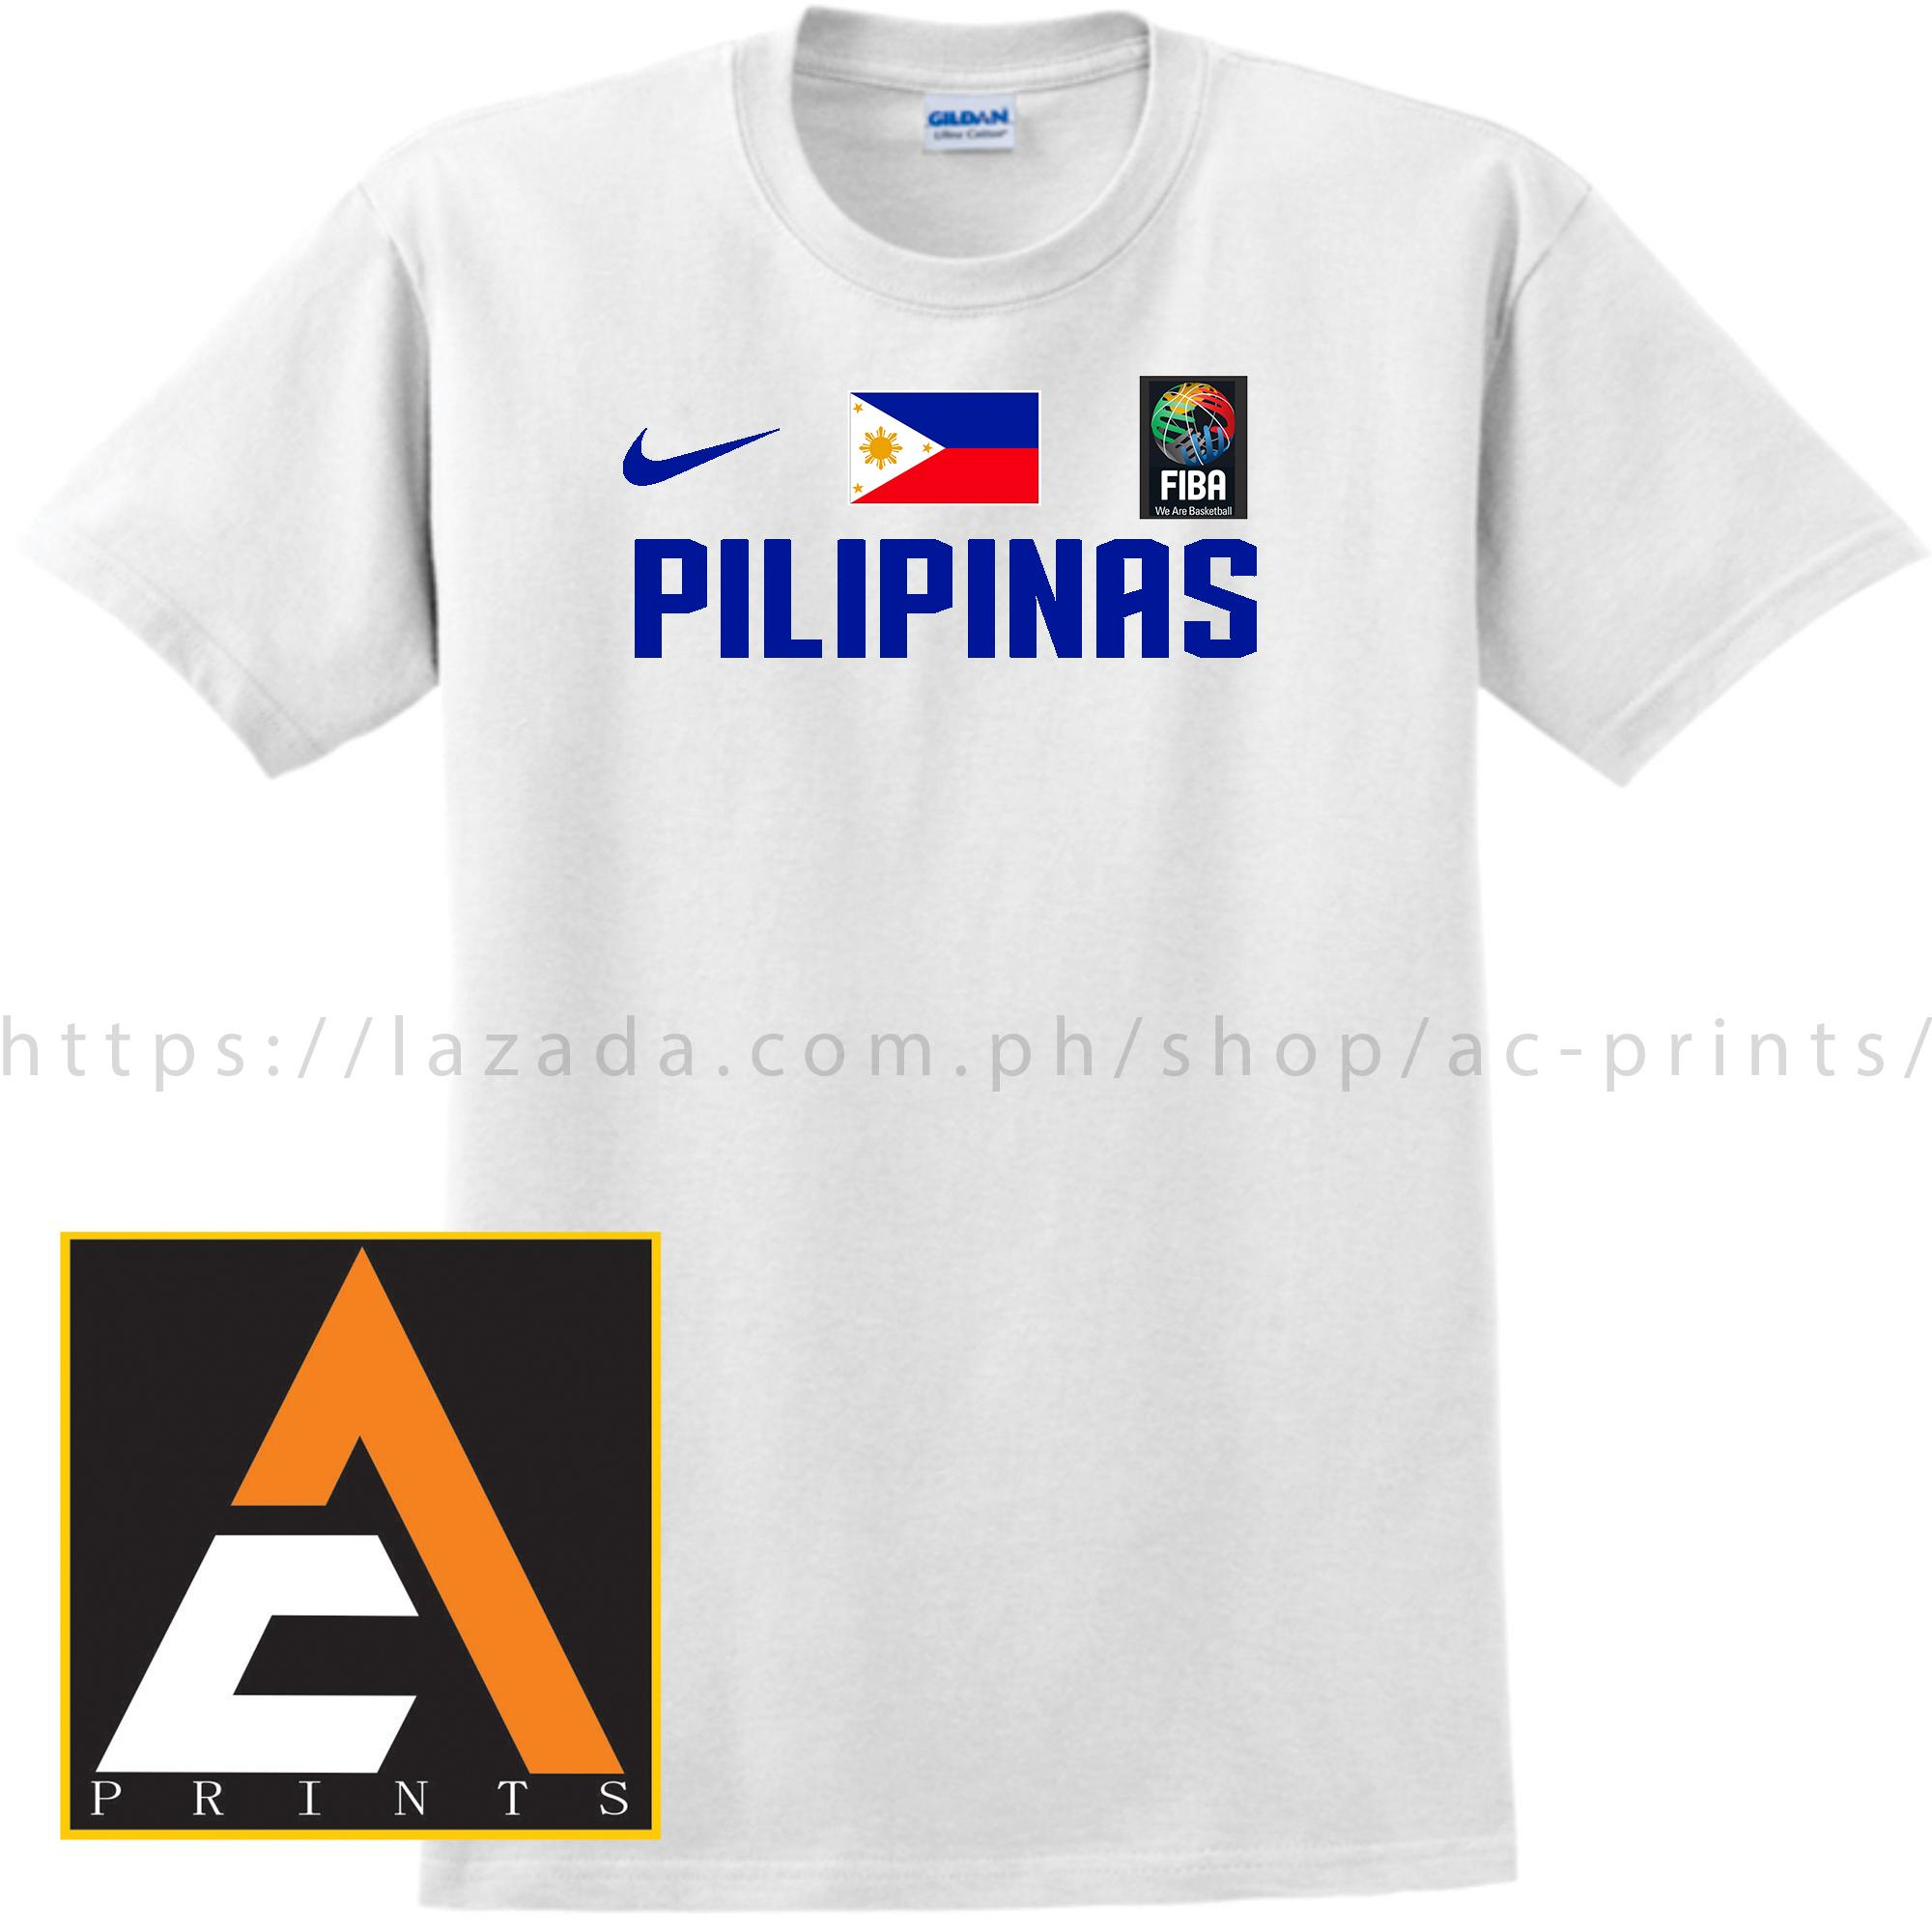 T Shirt Clothing For Men Sale Mens Online Kaos Polos Choco Solid Brands Prices Reviews In Philippines